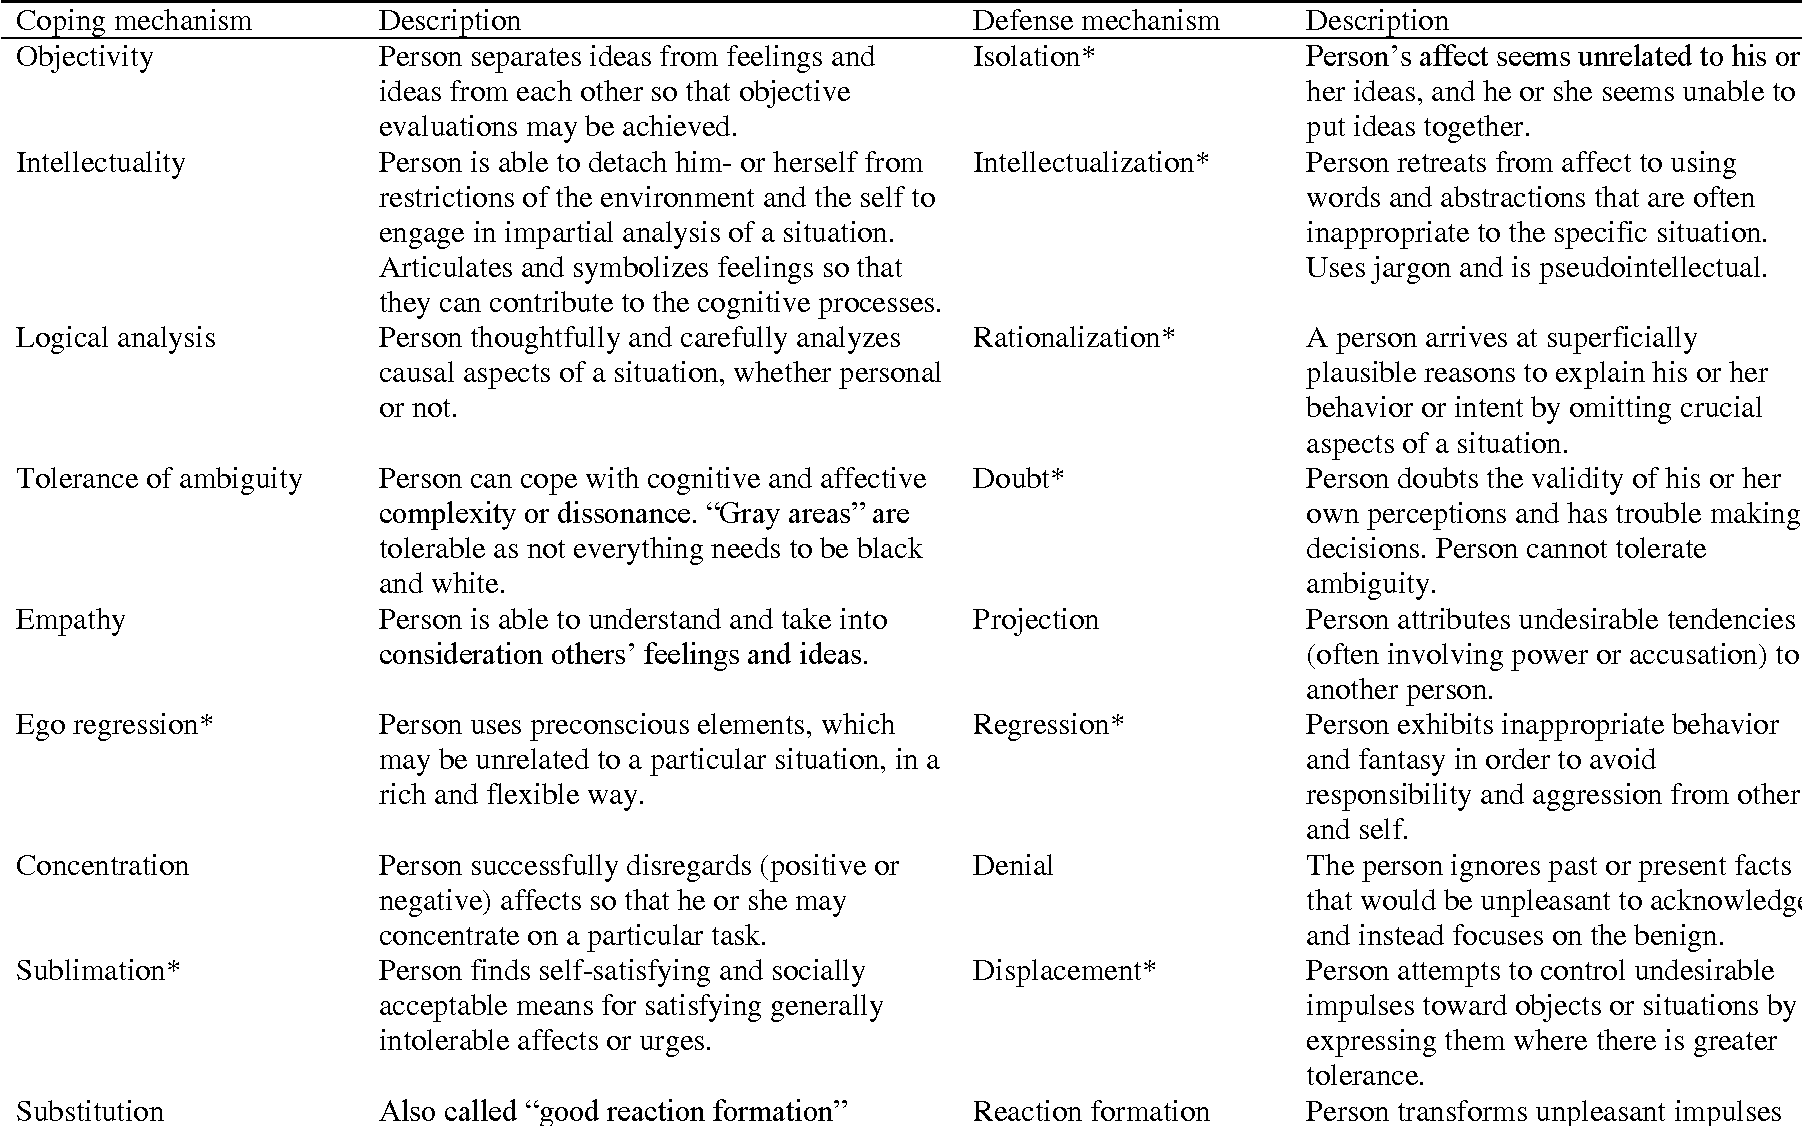 Table 1 From Change In Coping And Defense Mechanisms Across